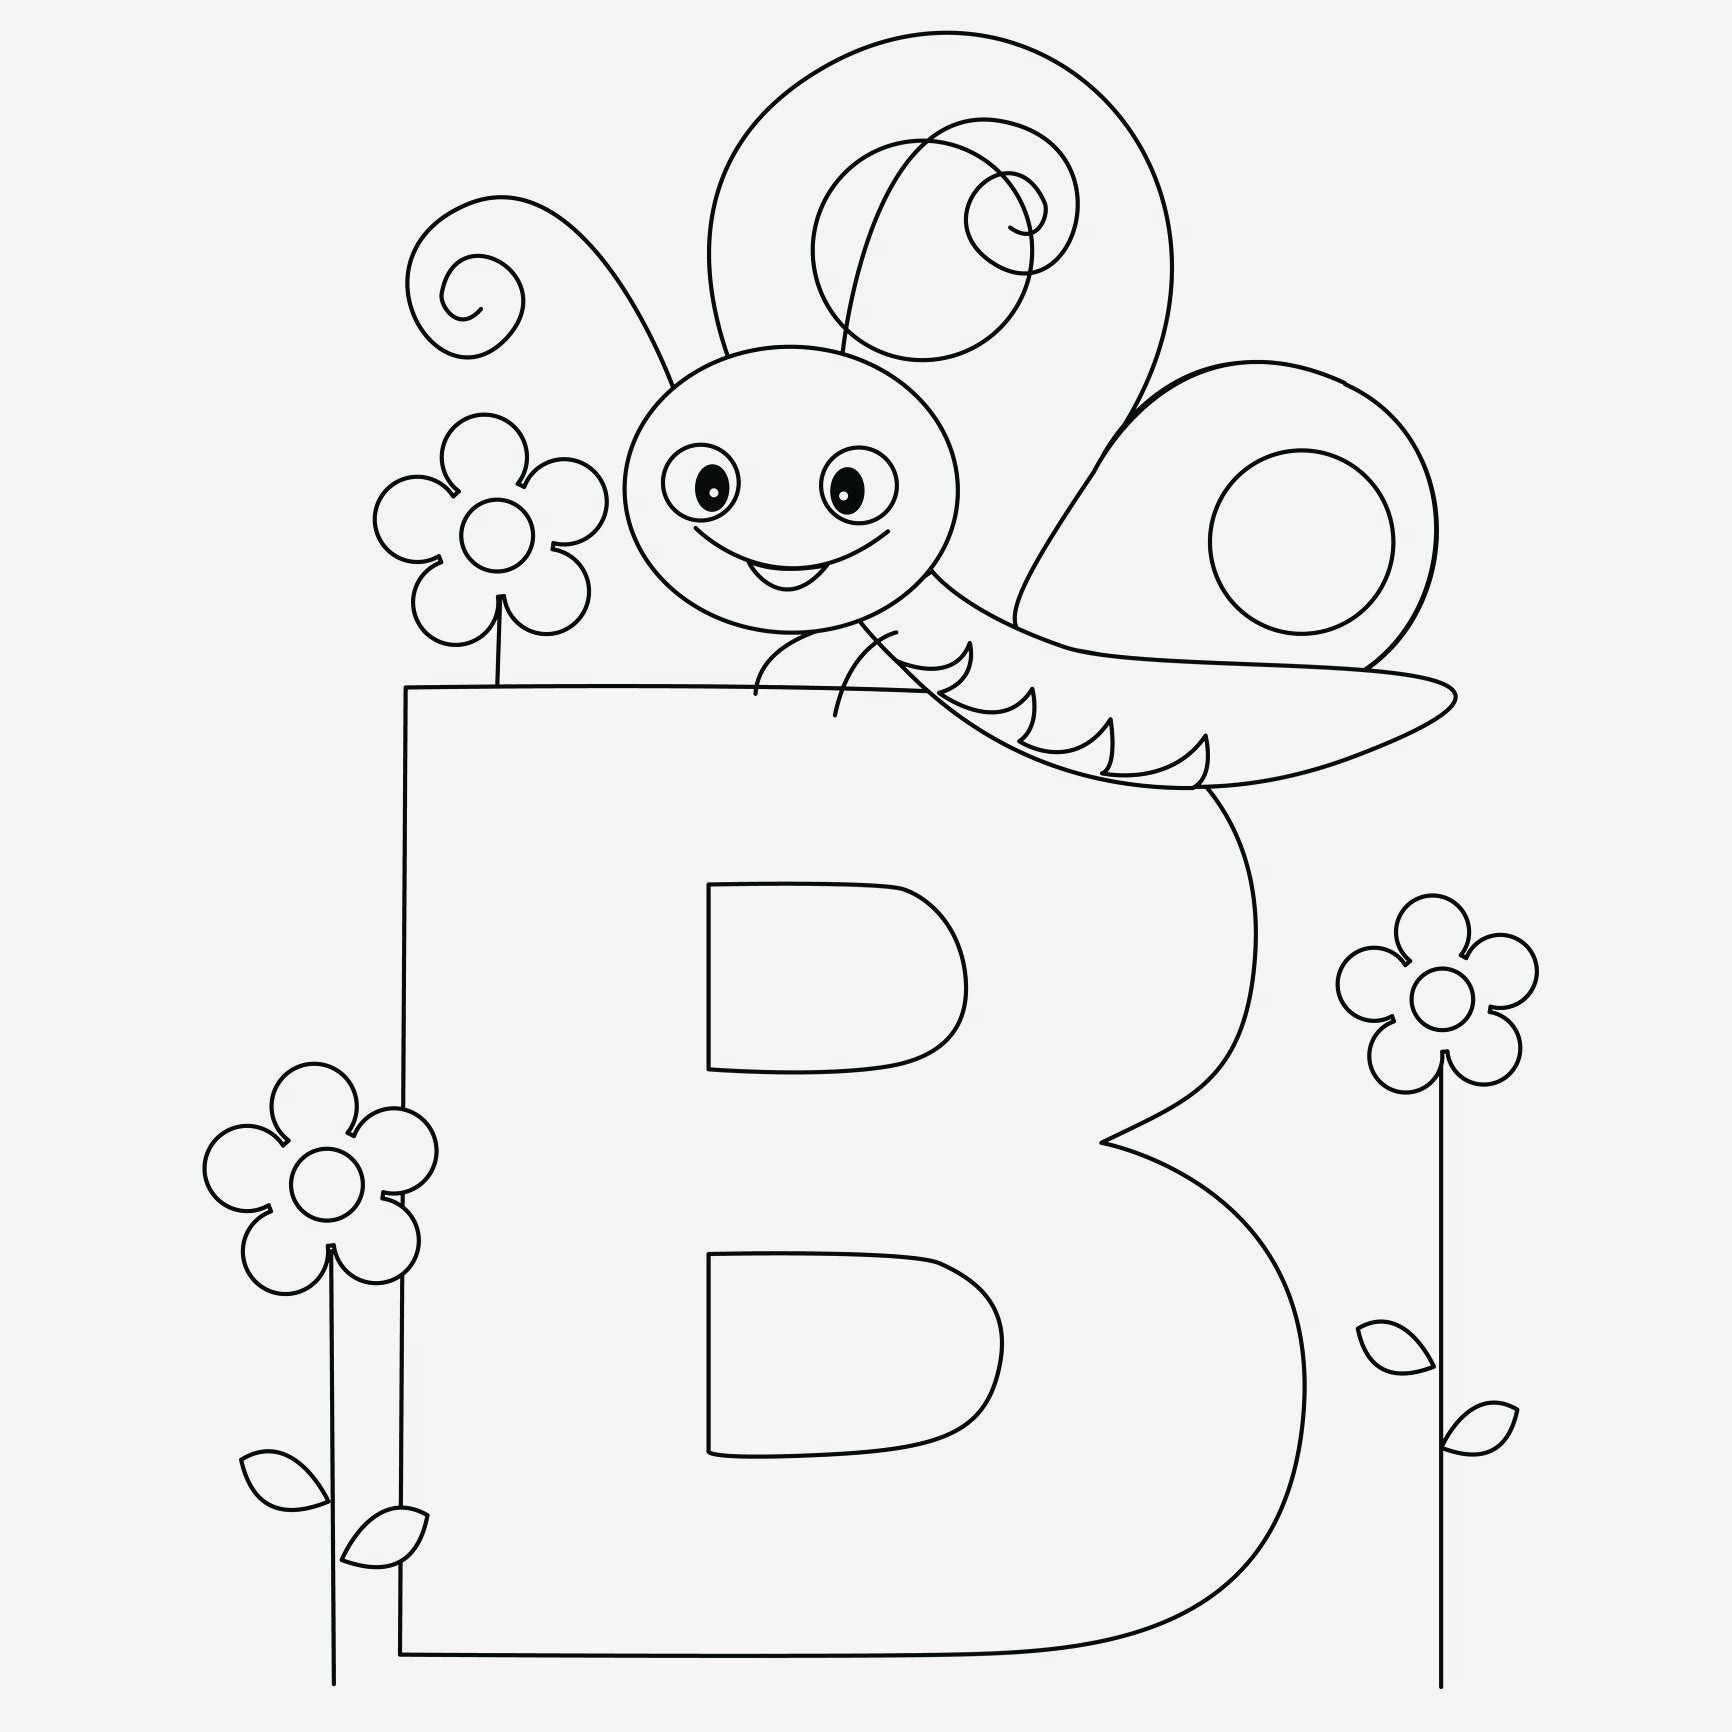 Letter B Coloring Pages  Printable 7k - To print for your project